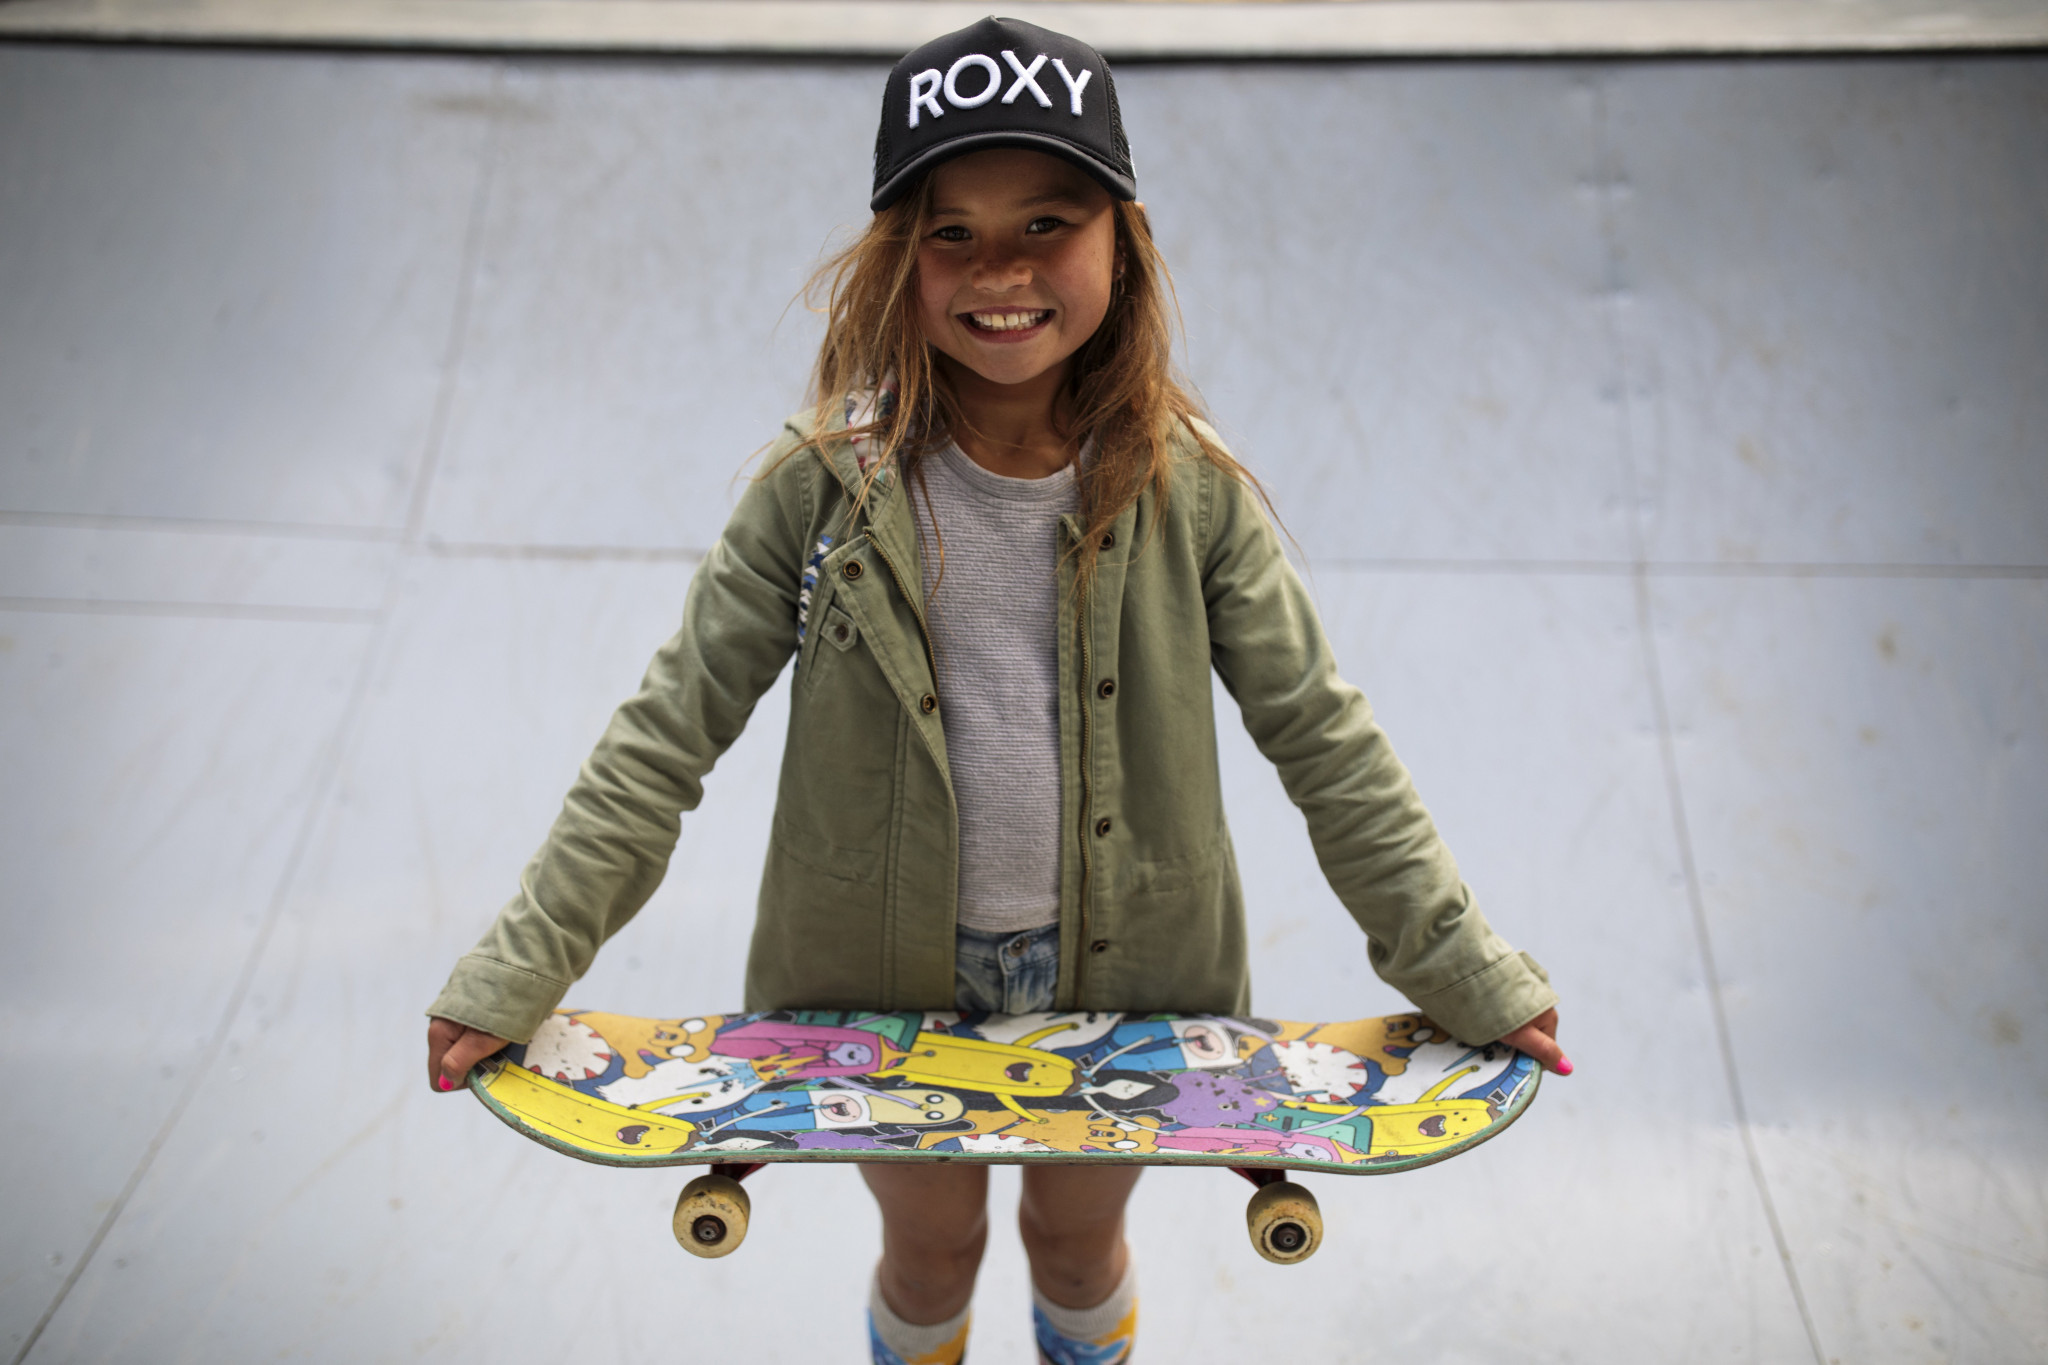 Ten-year-old skateboarder gets further boost in bid for Tokyo 2020 place